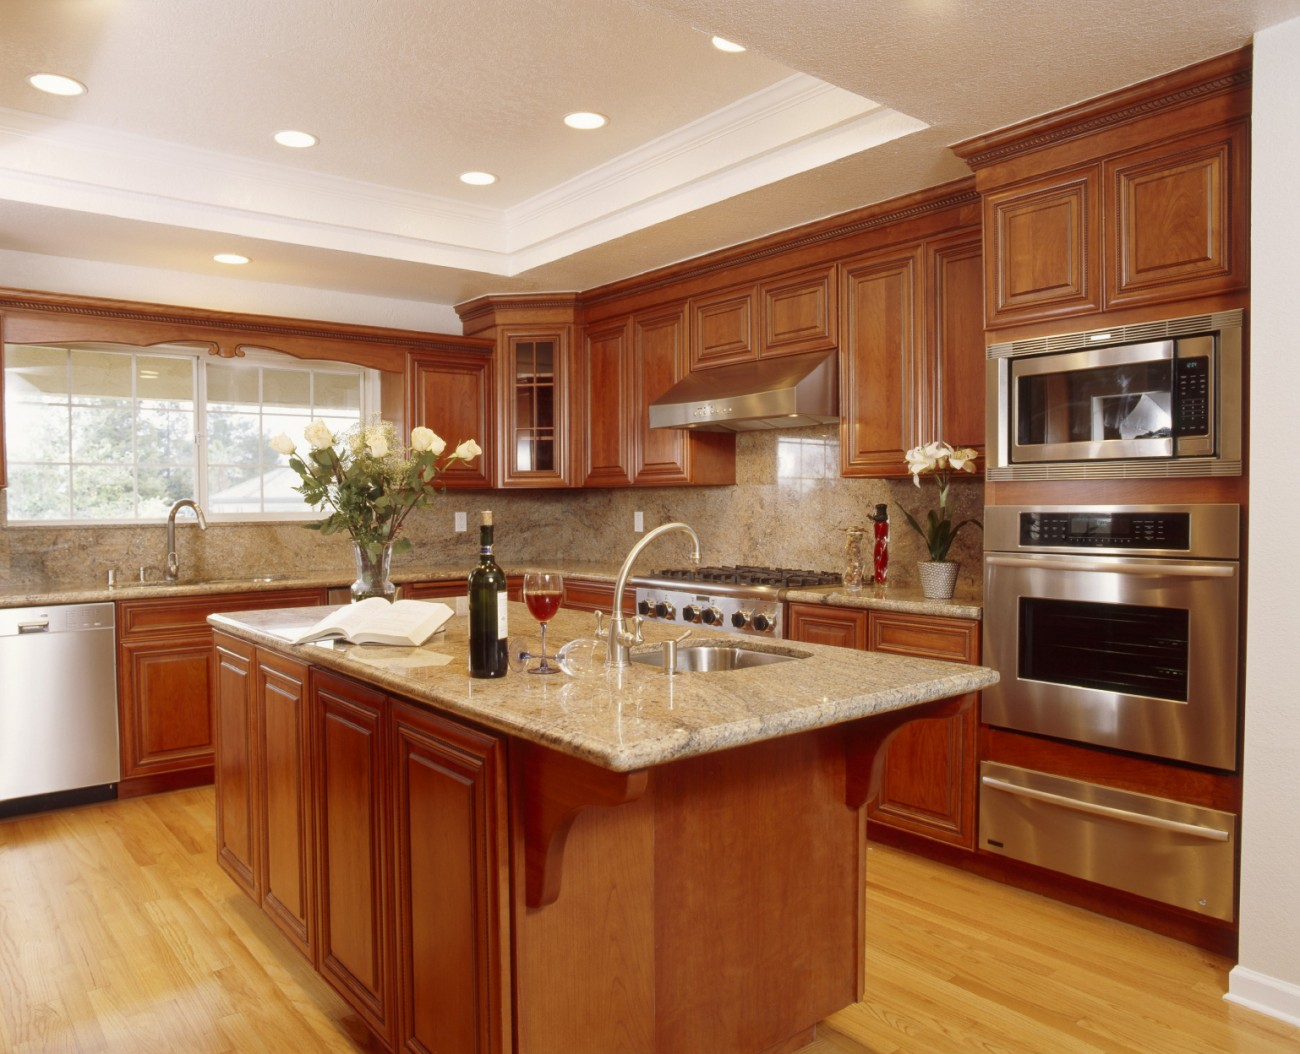 Images Of Beautiful Kitchens Fair With Beautiful Kitchen Cabinets Image